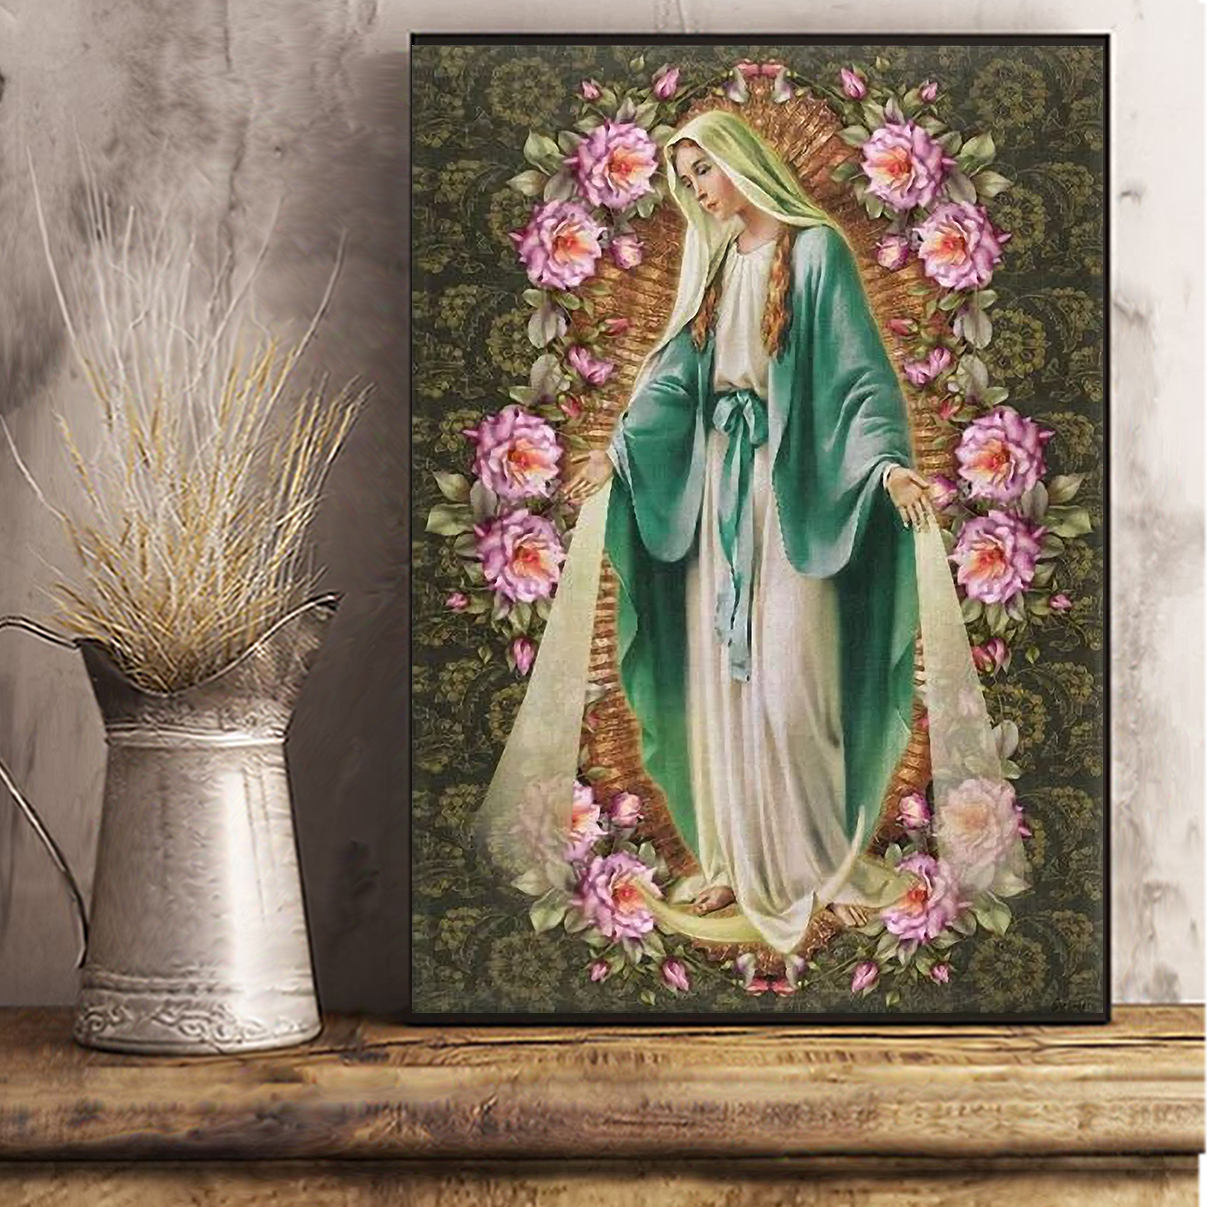 Our lady immaculate conception of mary canvas large